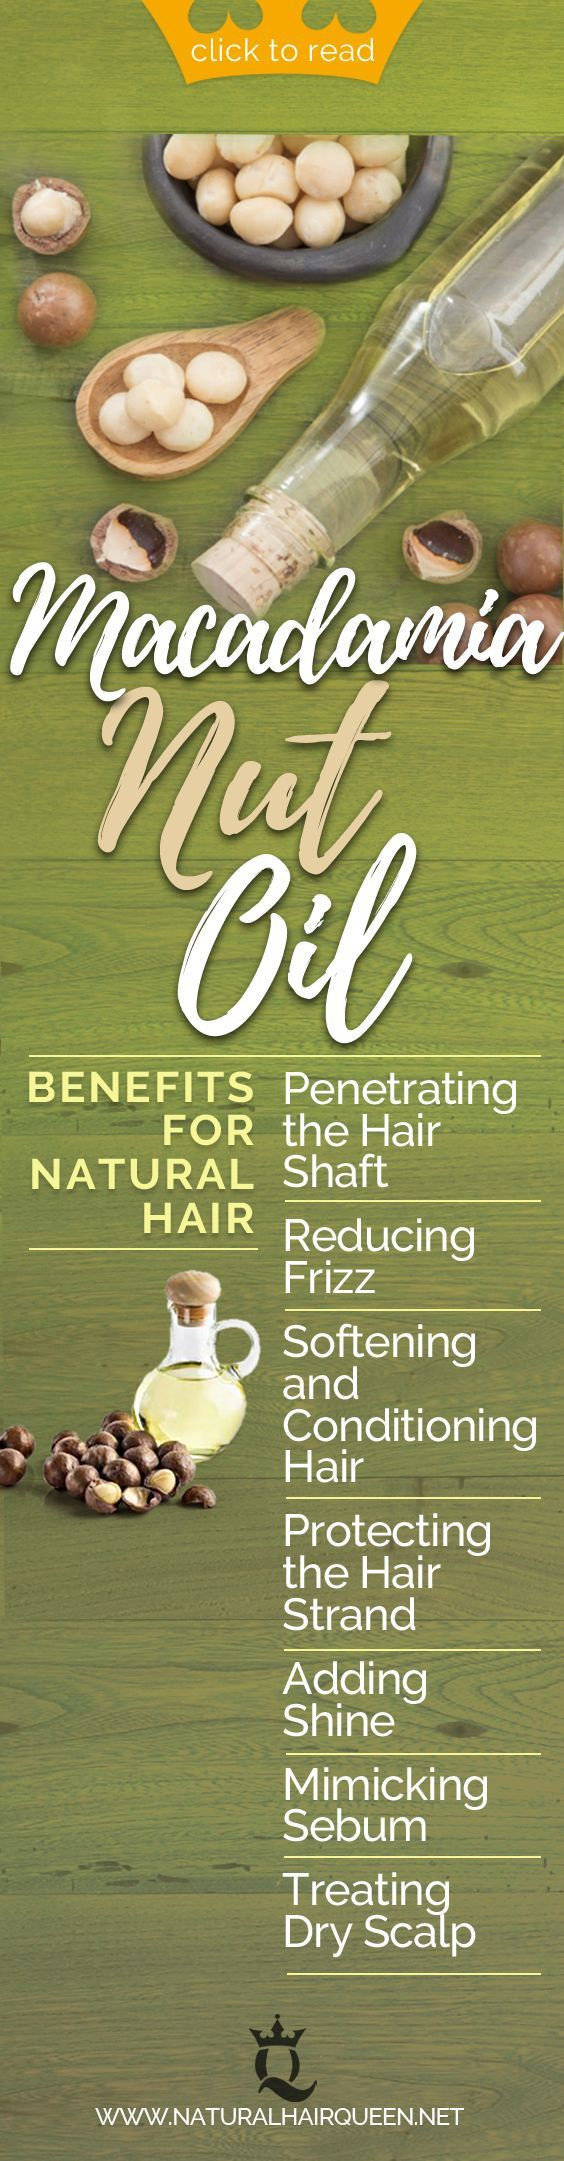 The Benefits Of Macadamia Nut Oil For Your Natural Hair Natural Hair Styles Natural Hair Benefits Hair Shrinkage